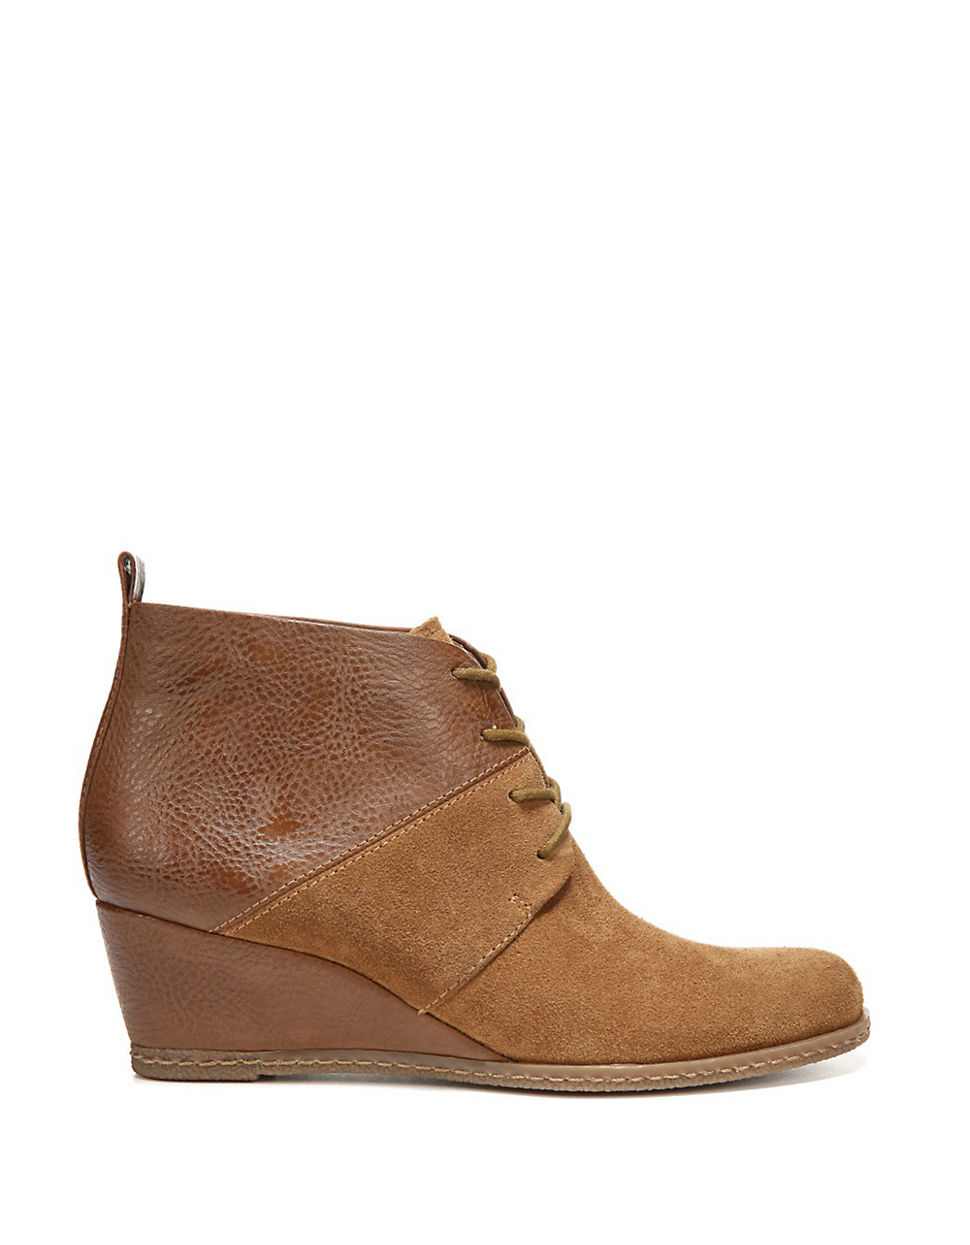 Find great deals on eBay for brown suede wedge booties. Shop with confidence.